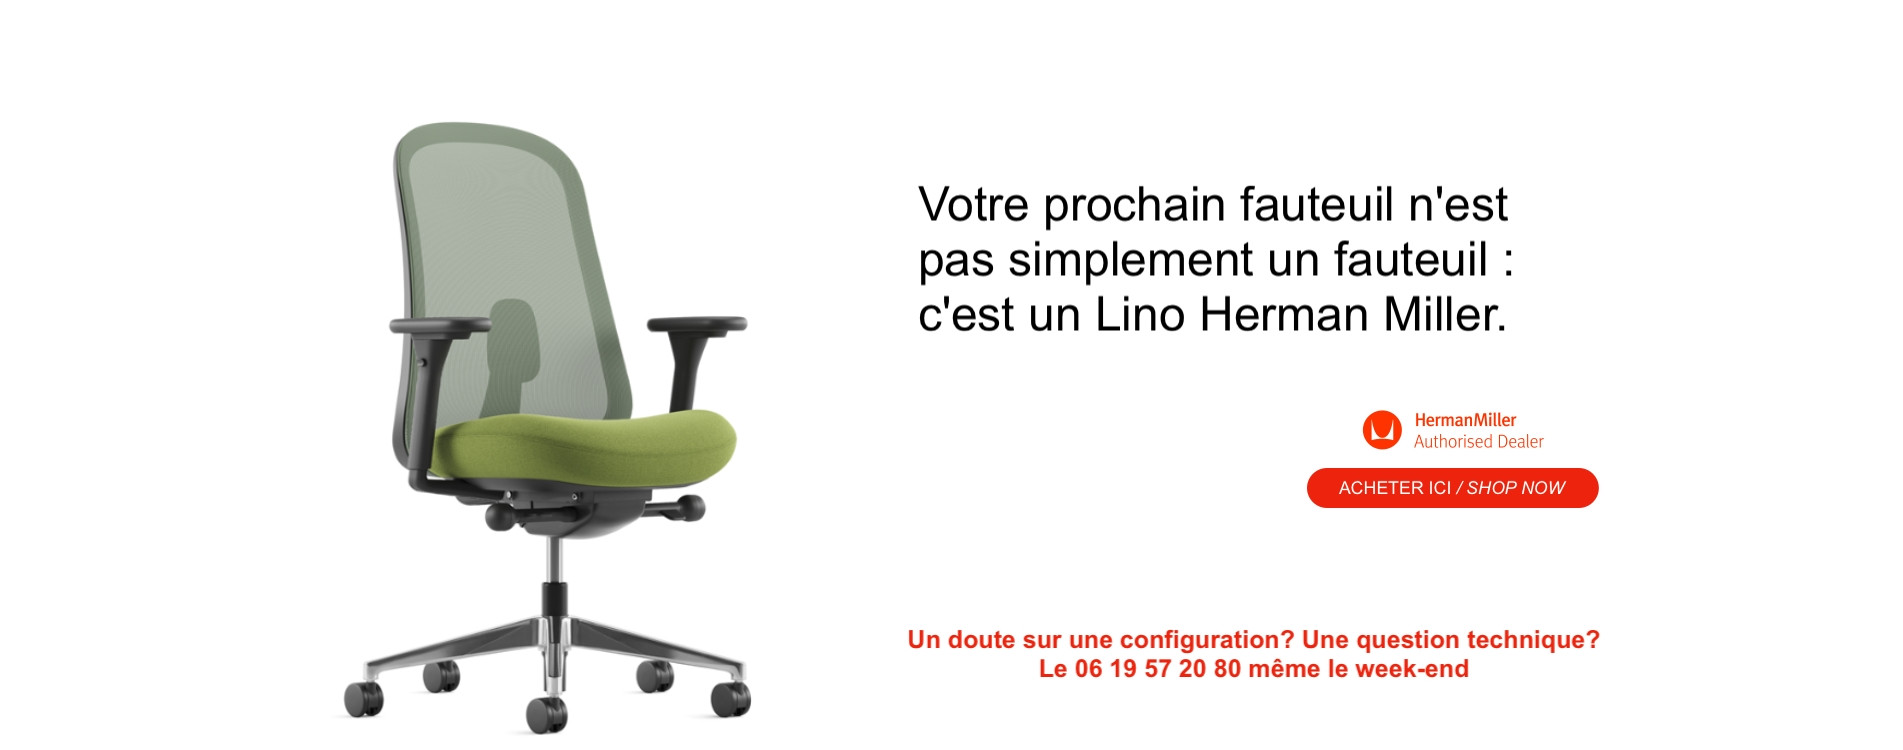 Your next chair is a Lino Herman Miller